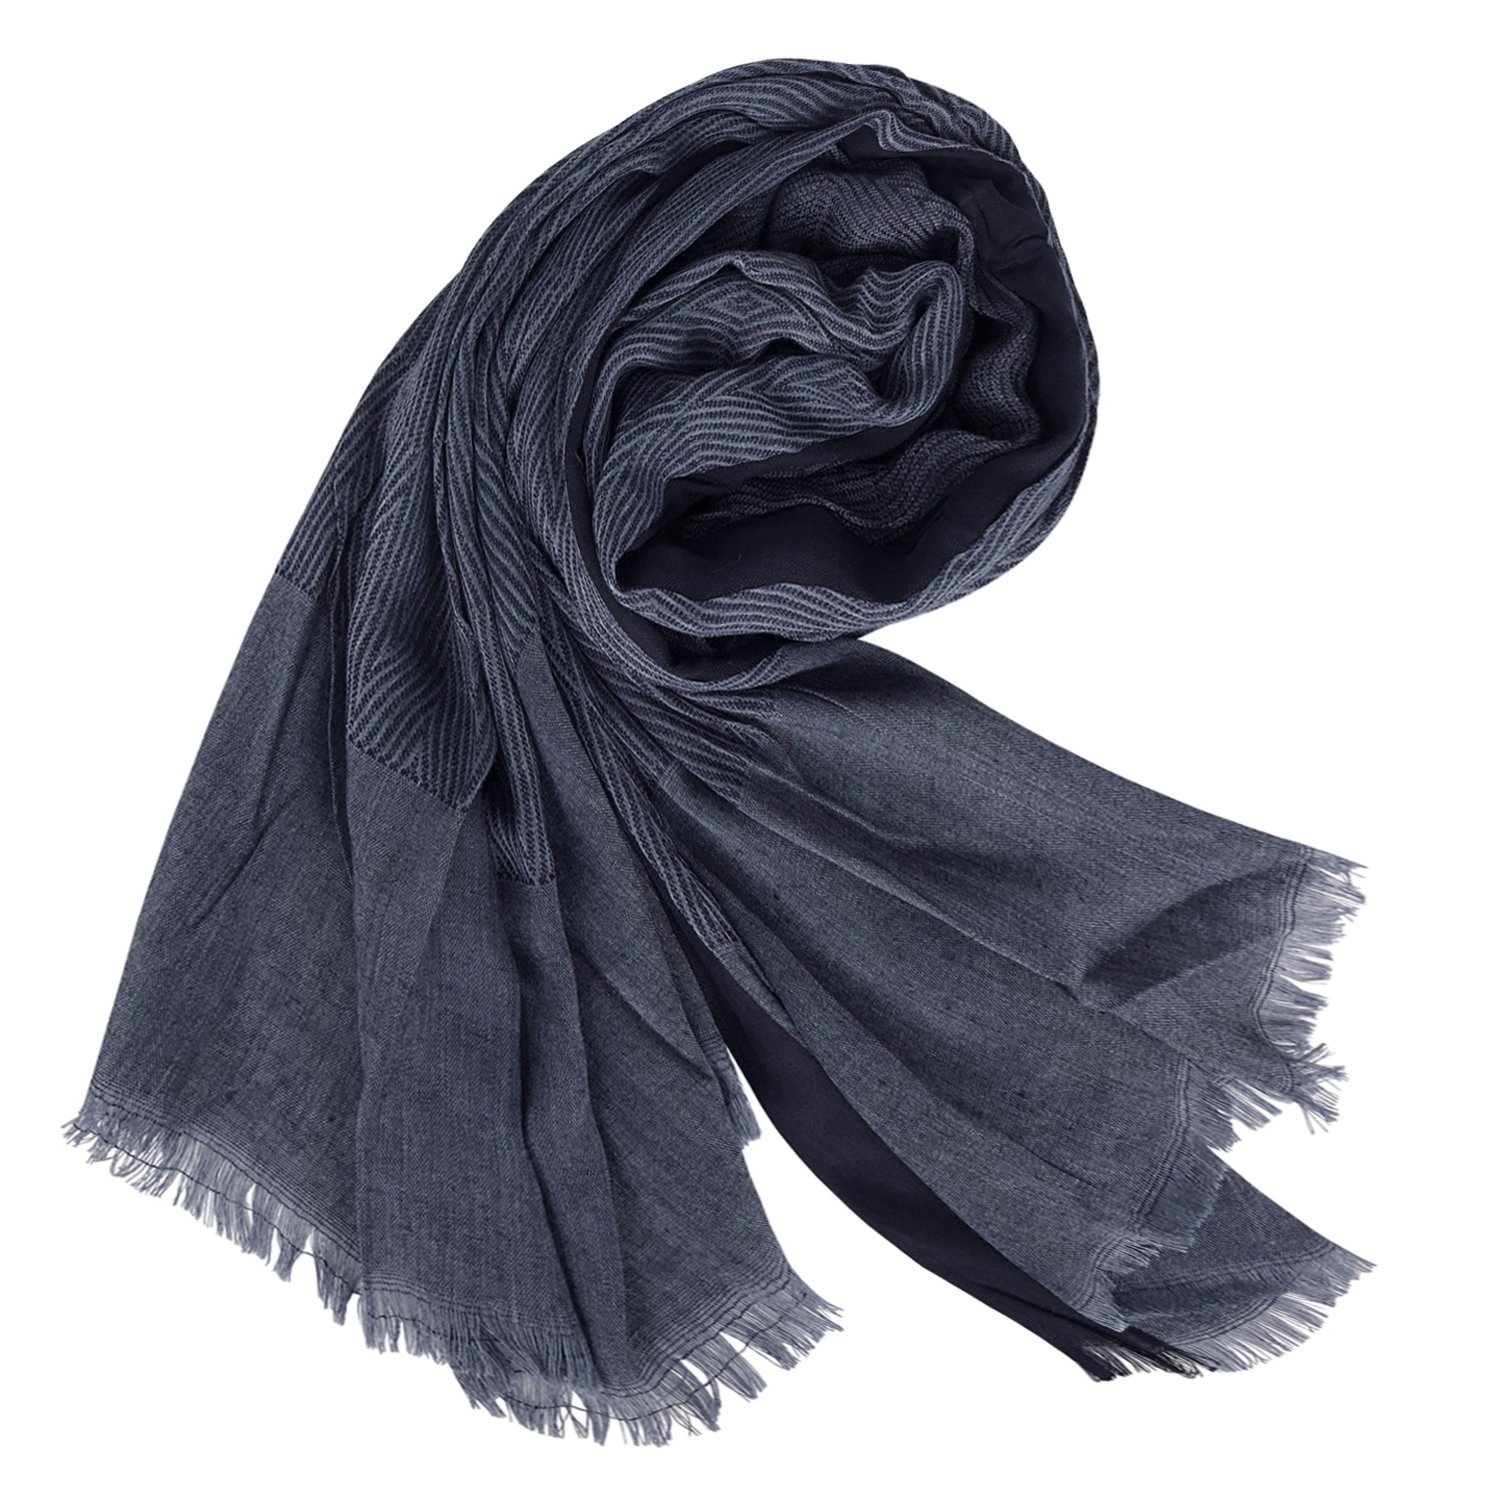 GERINLY Men Scarves Twill Cotton-Linen Long Winter Scarf (NavyBlue) by GERINLY (Image #3)